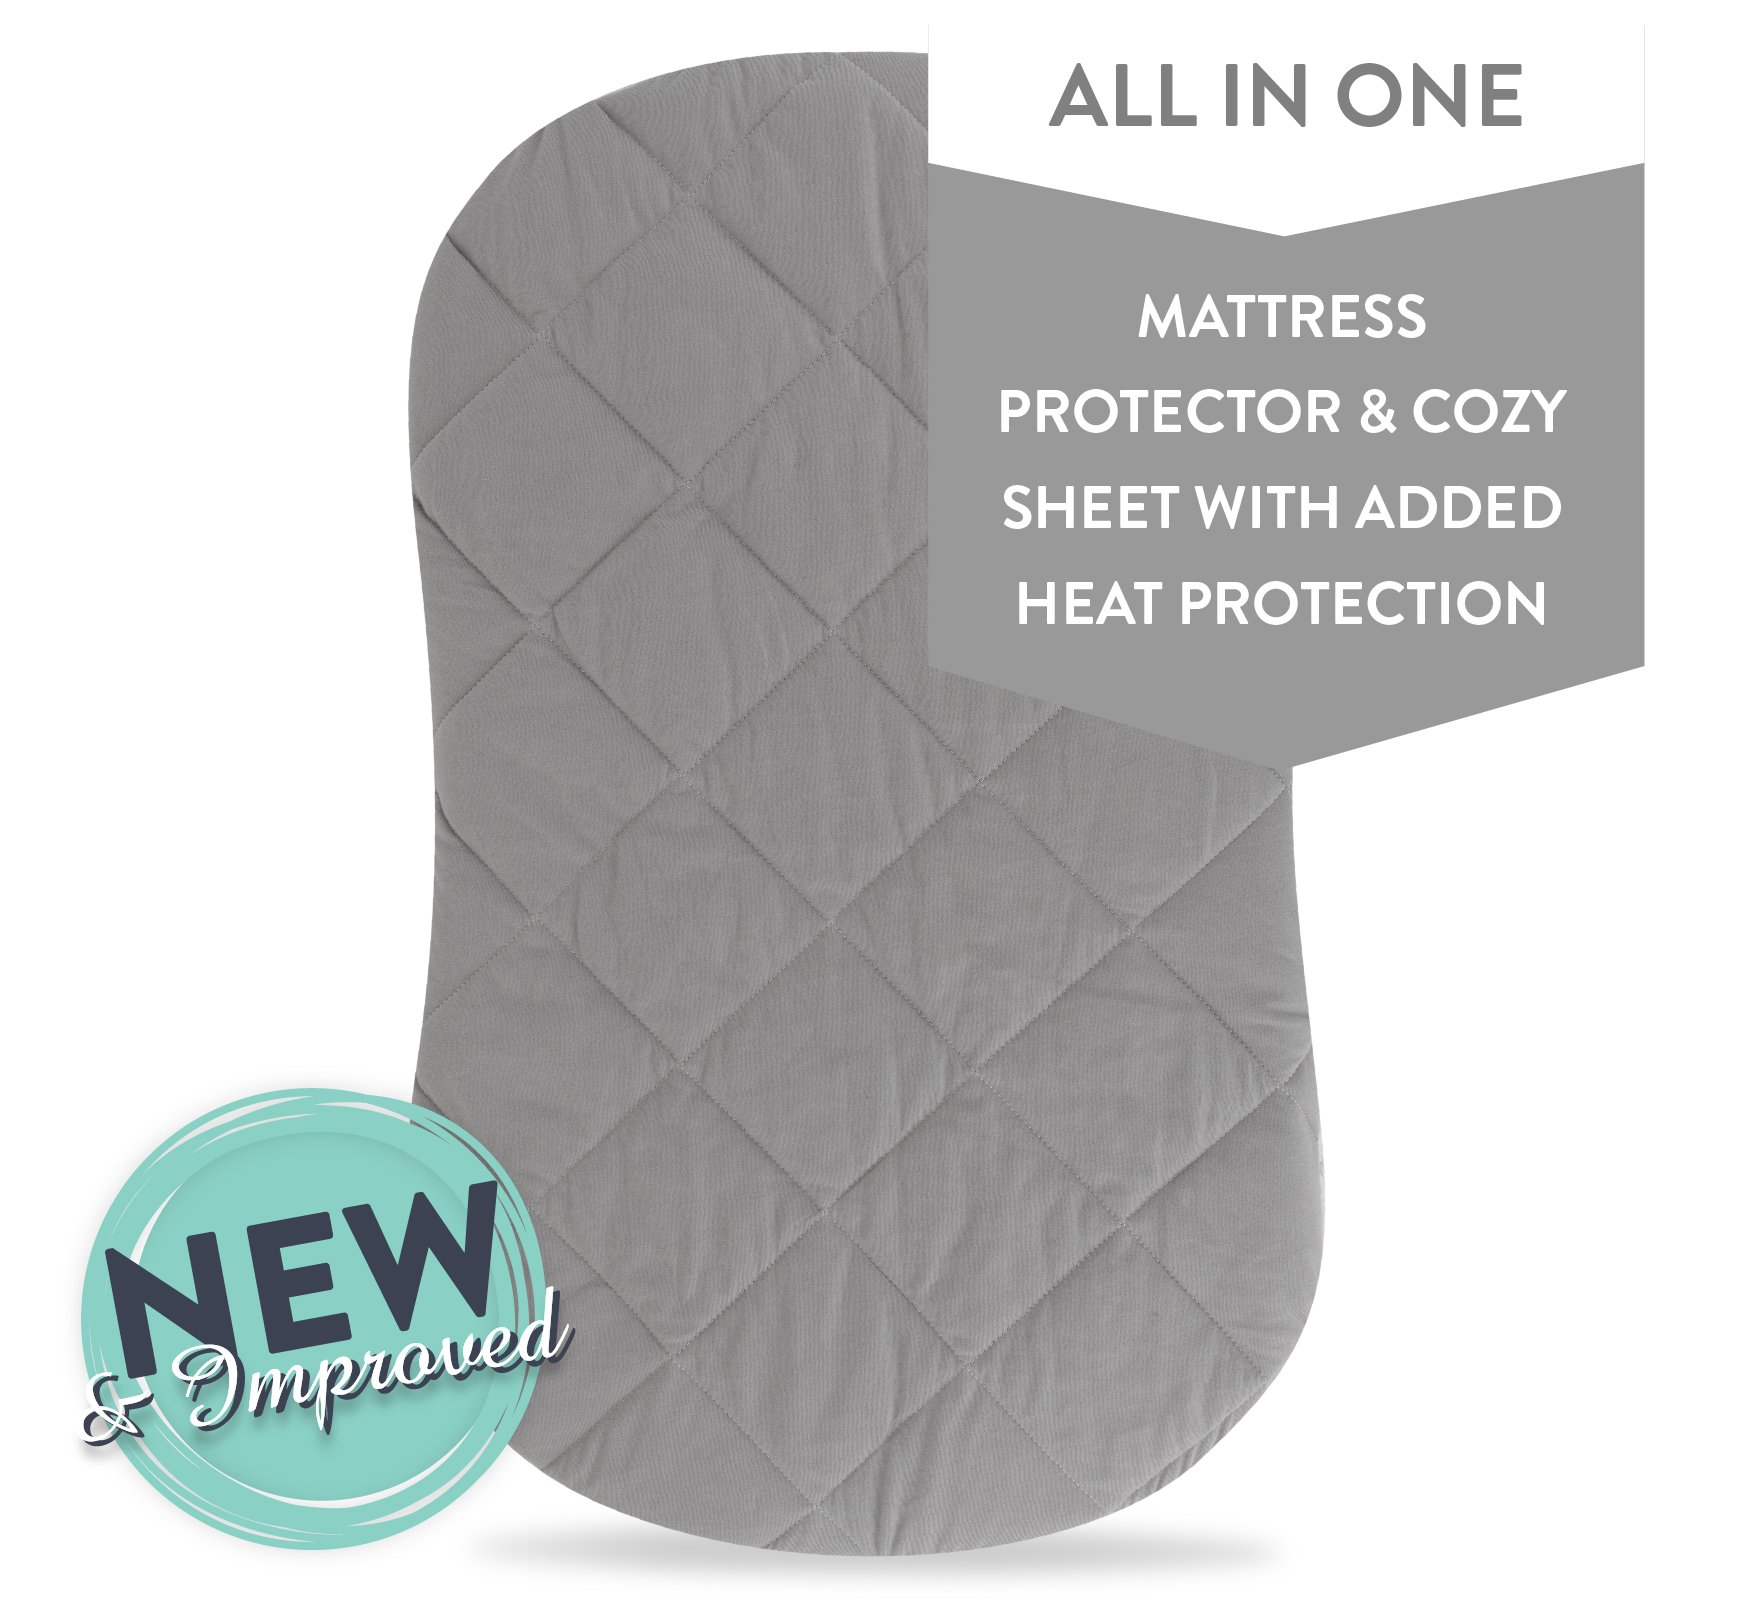 Jersey Cotton Quilted Waterproof Hourglass/Oval Bassinet Sheet All in one Bassinet Sheet and Bassinet Mattress Pad Cover with Heat Protection - Grey, by Ely's & Co.